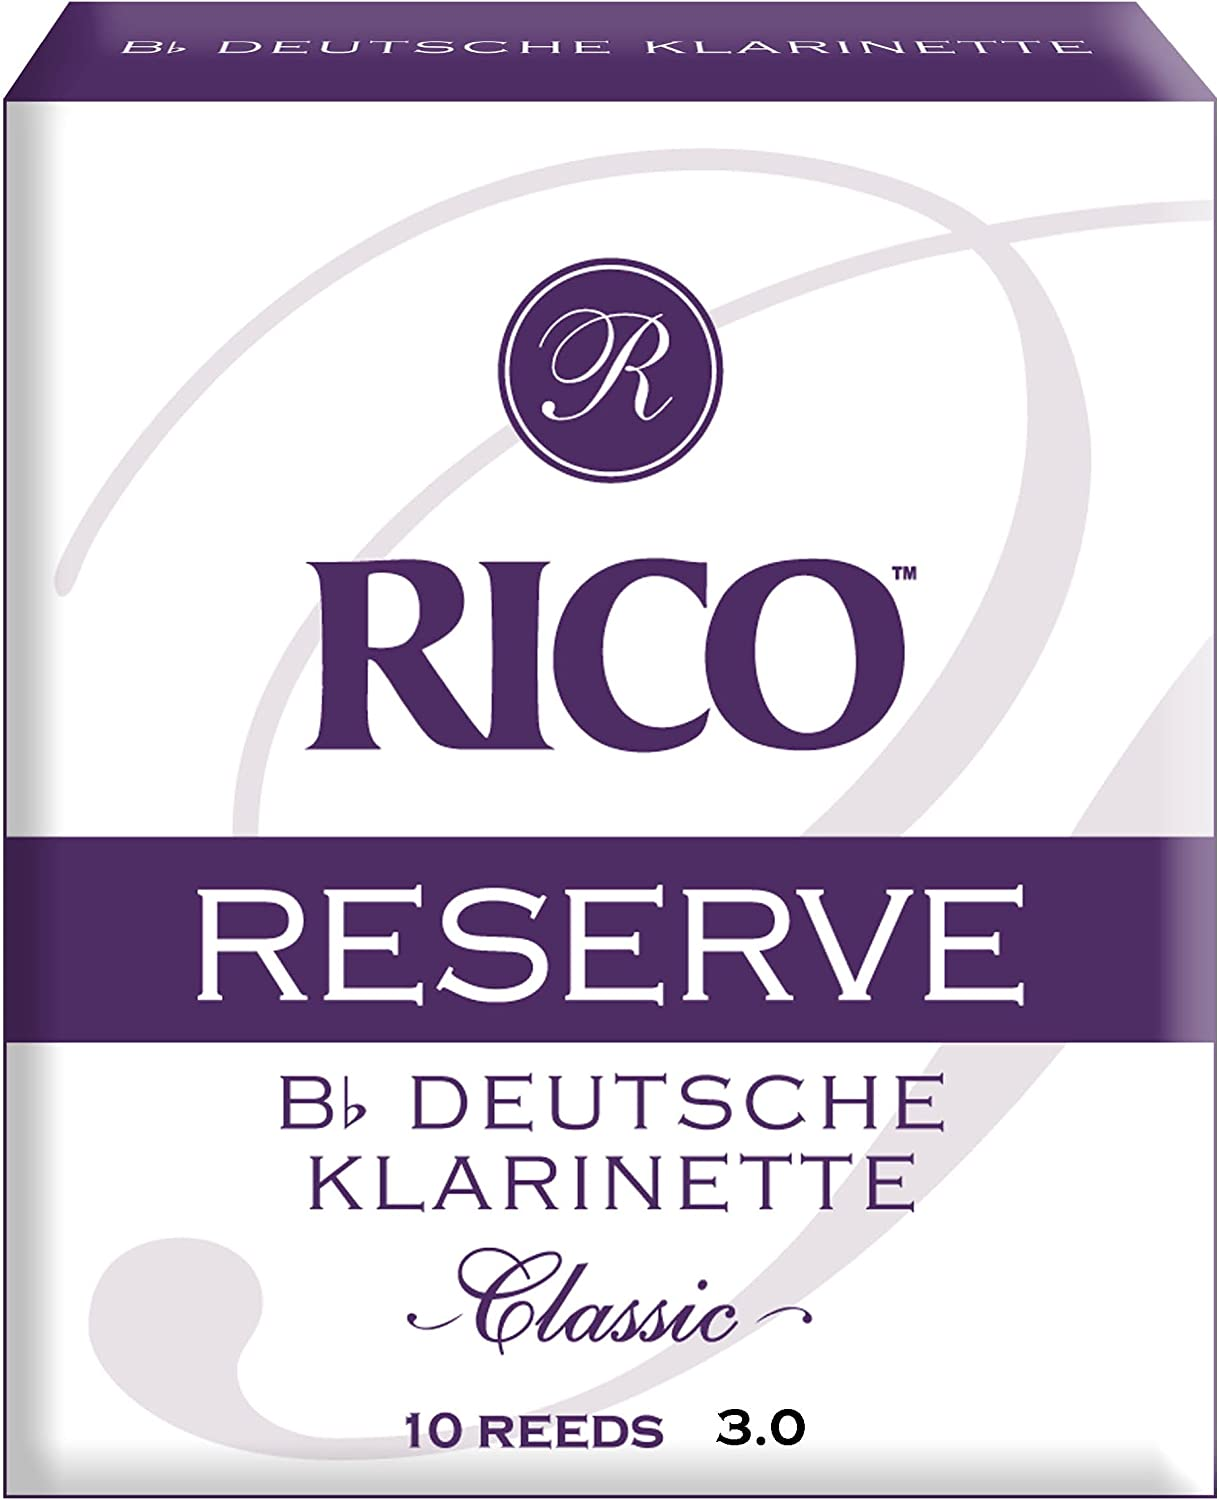 Rico New popularity Reserve Classic German Bb Clarinet Reeds 10- 3.0 overseas Strength